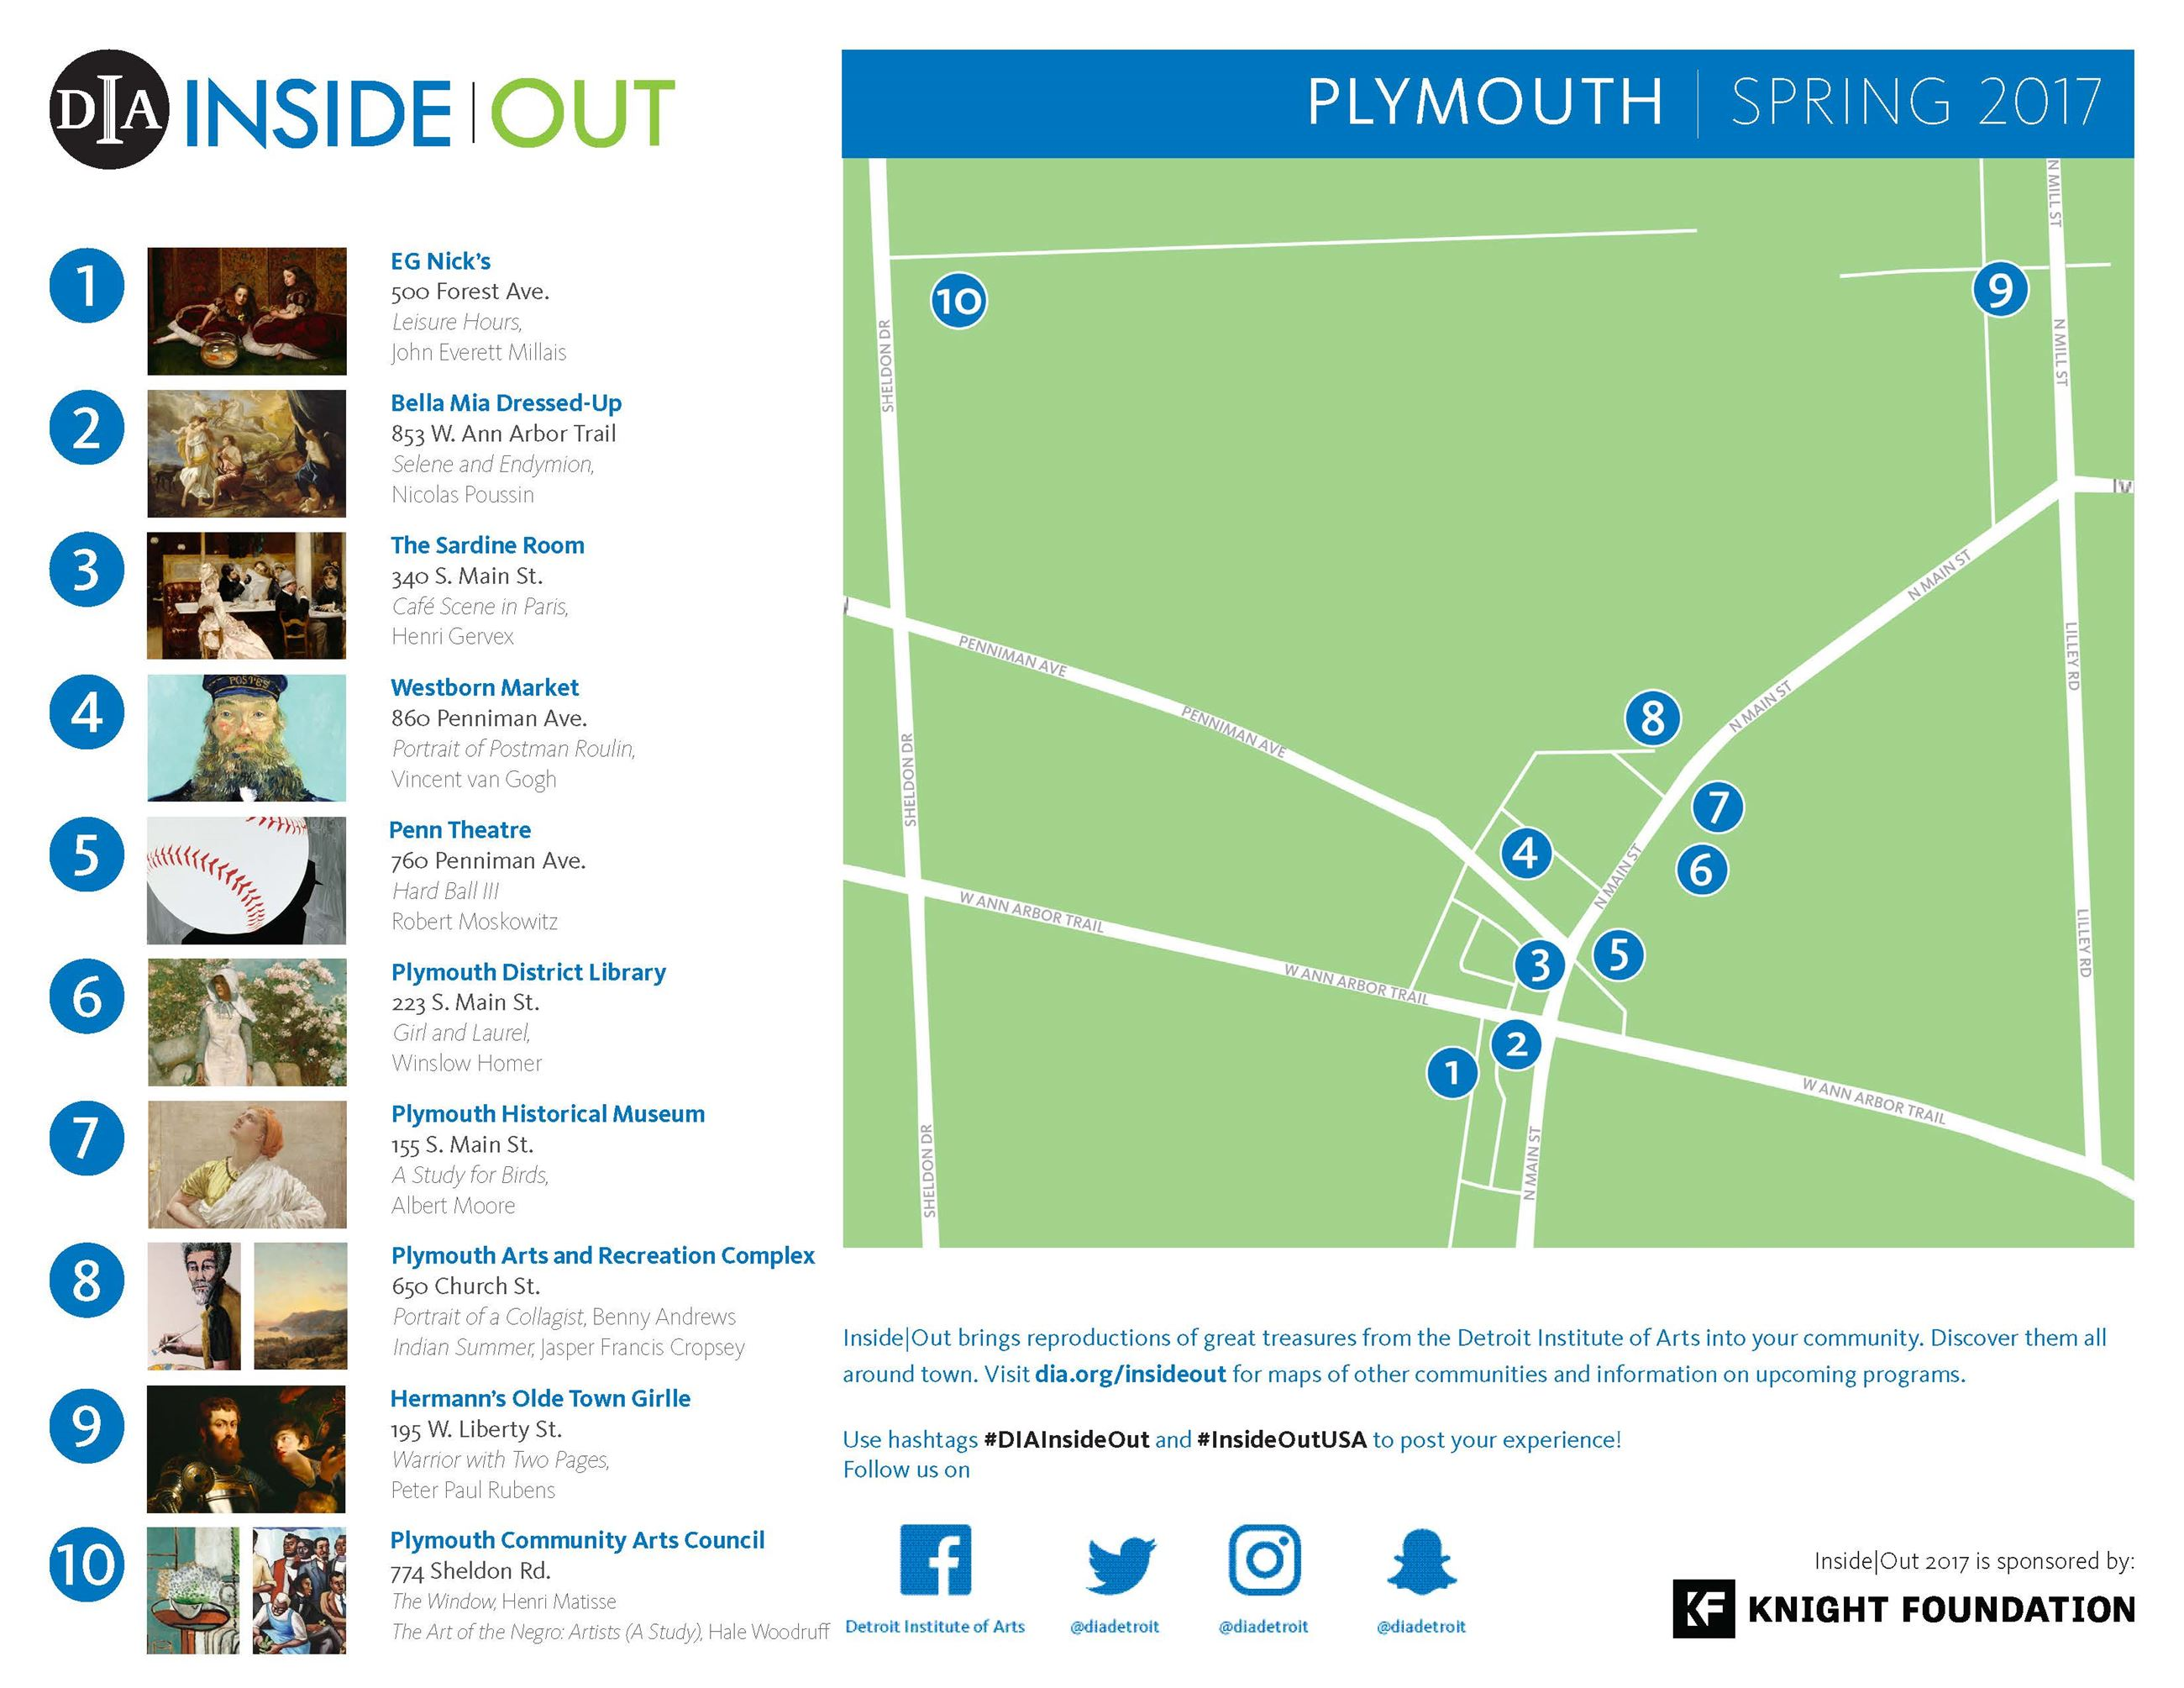 InsideOut_Spring2017_Plymouth2